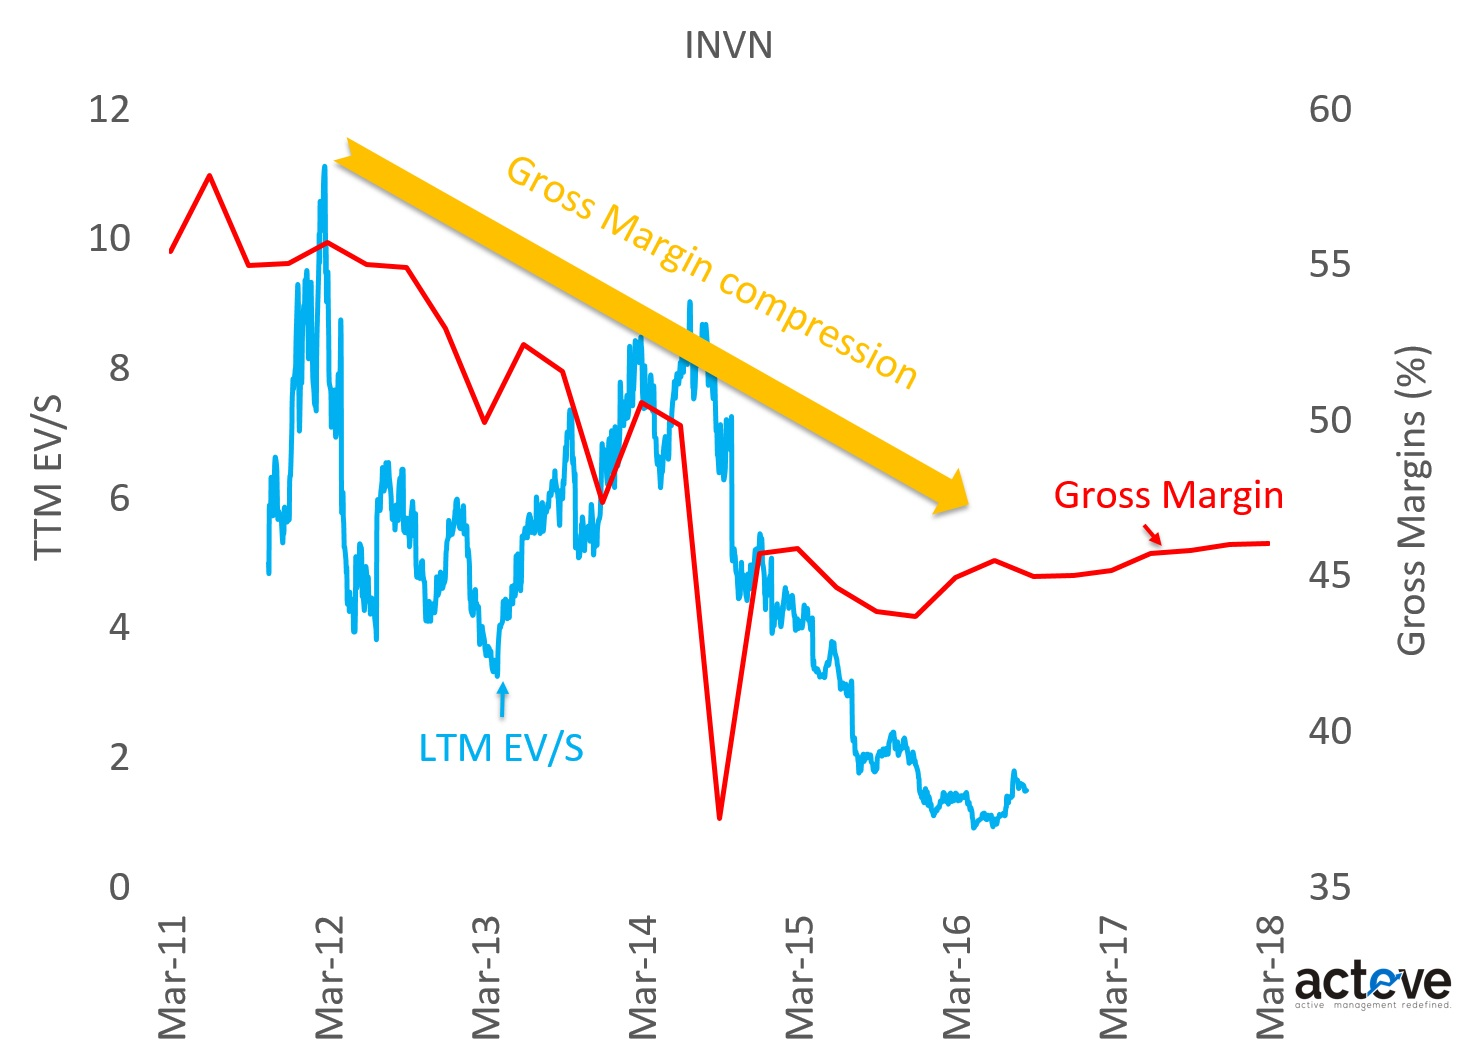 INVN EV/S vs. Gross Margins